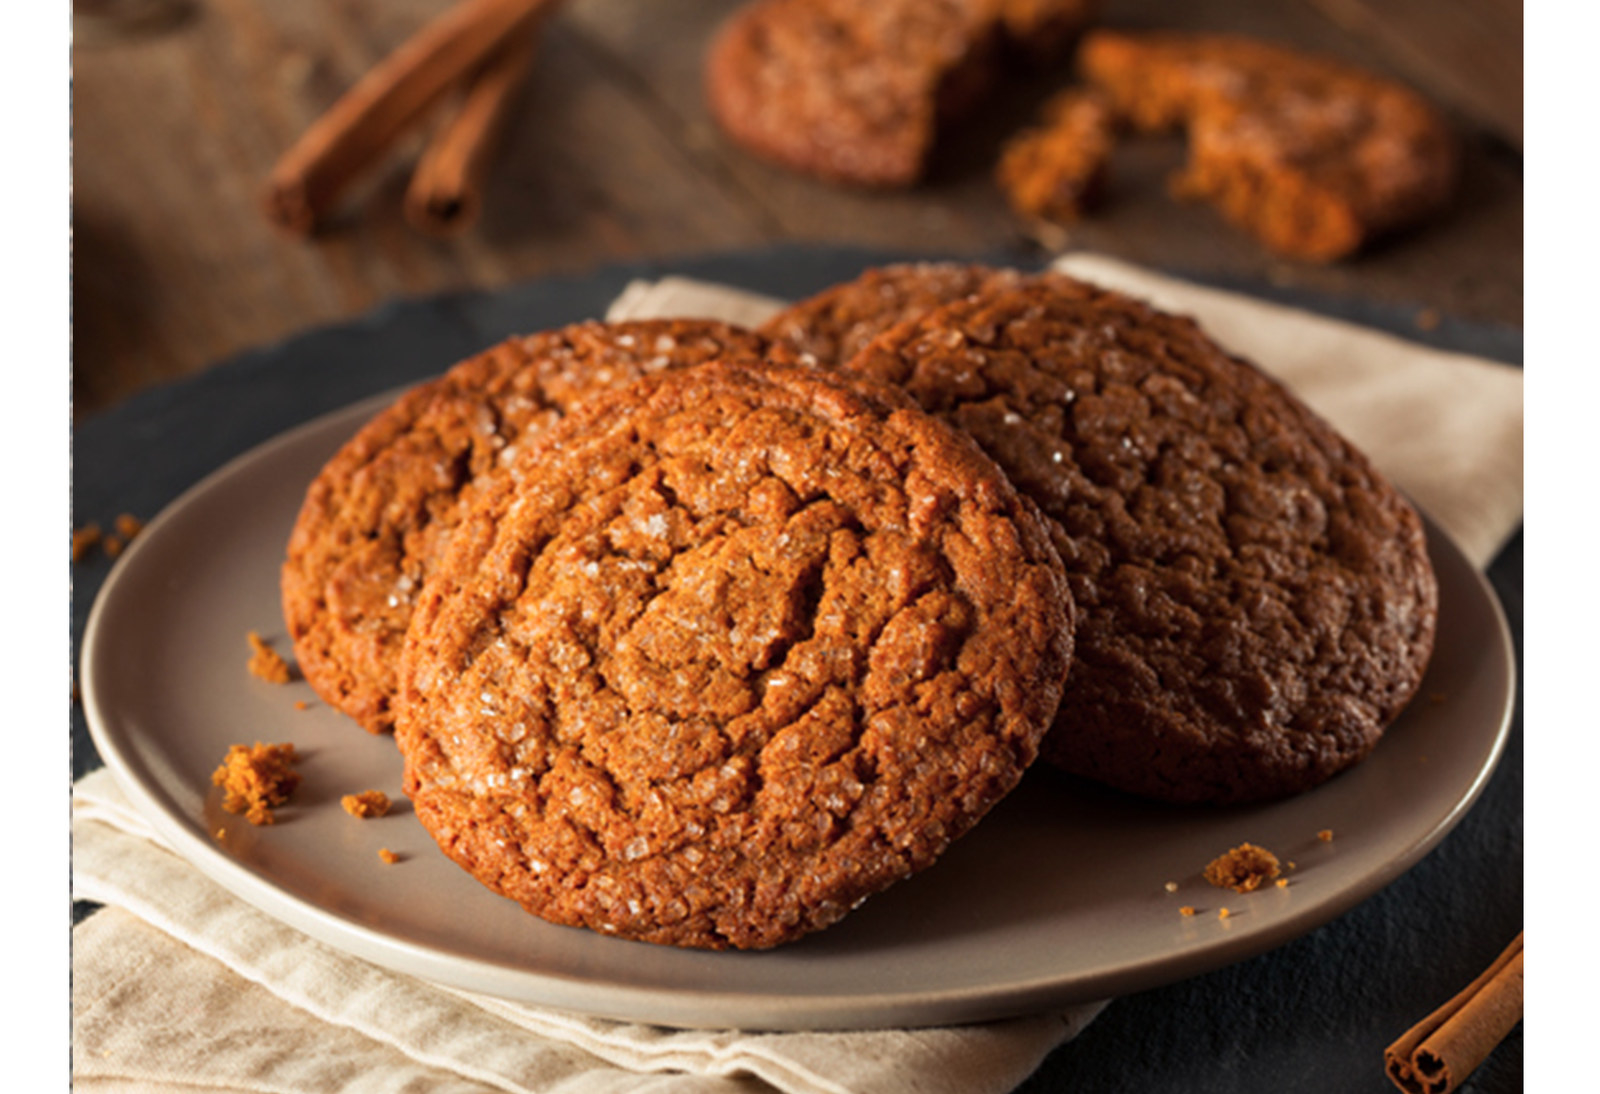 """Not really a recipe but Ginger Nuts biscuits from the UK are vegan and sooooo good!"" — hiya1741If you can't grab a hold of these delicious goodies, you can make similar ones really quickly. Just follow the recipe here."